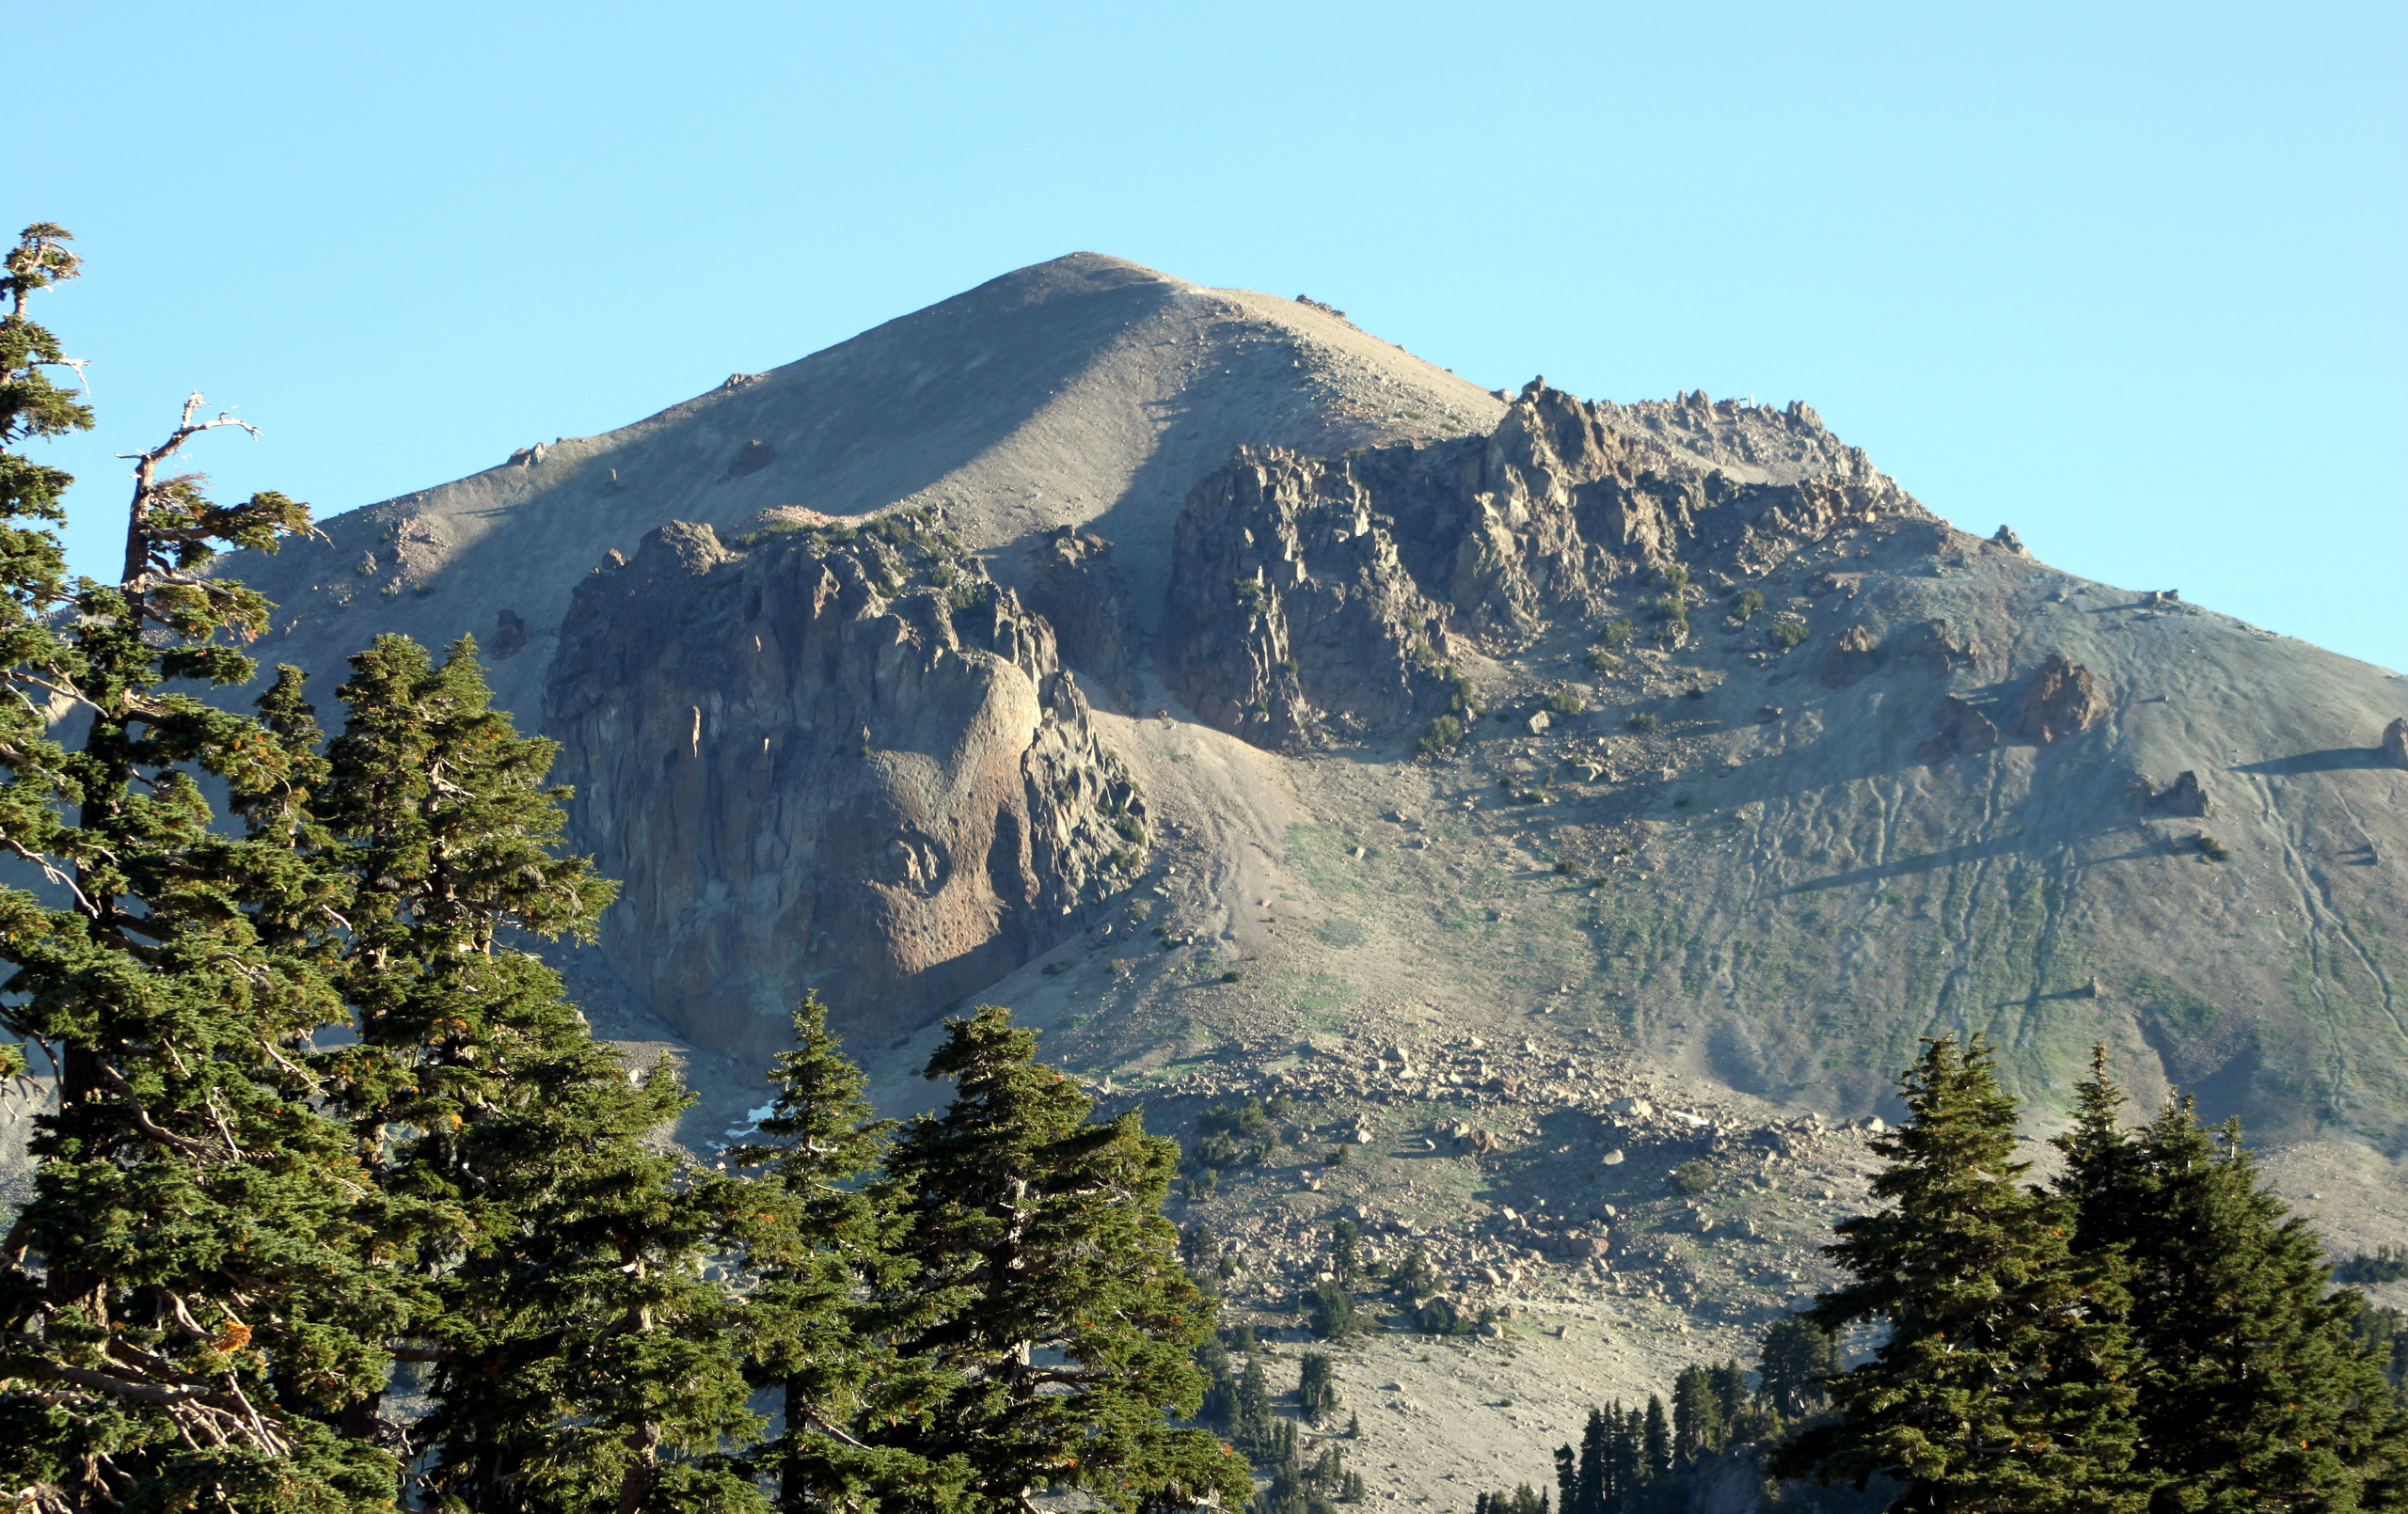 lassen national park wallpaper - photo #1